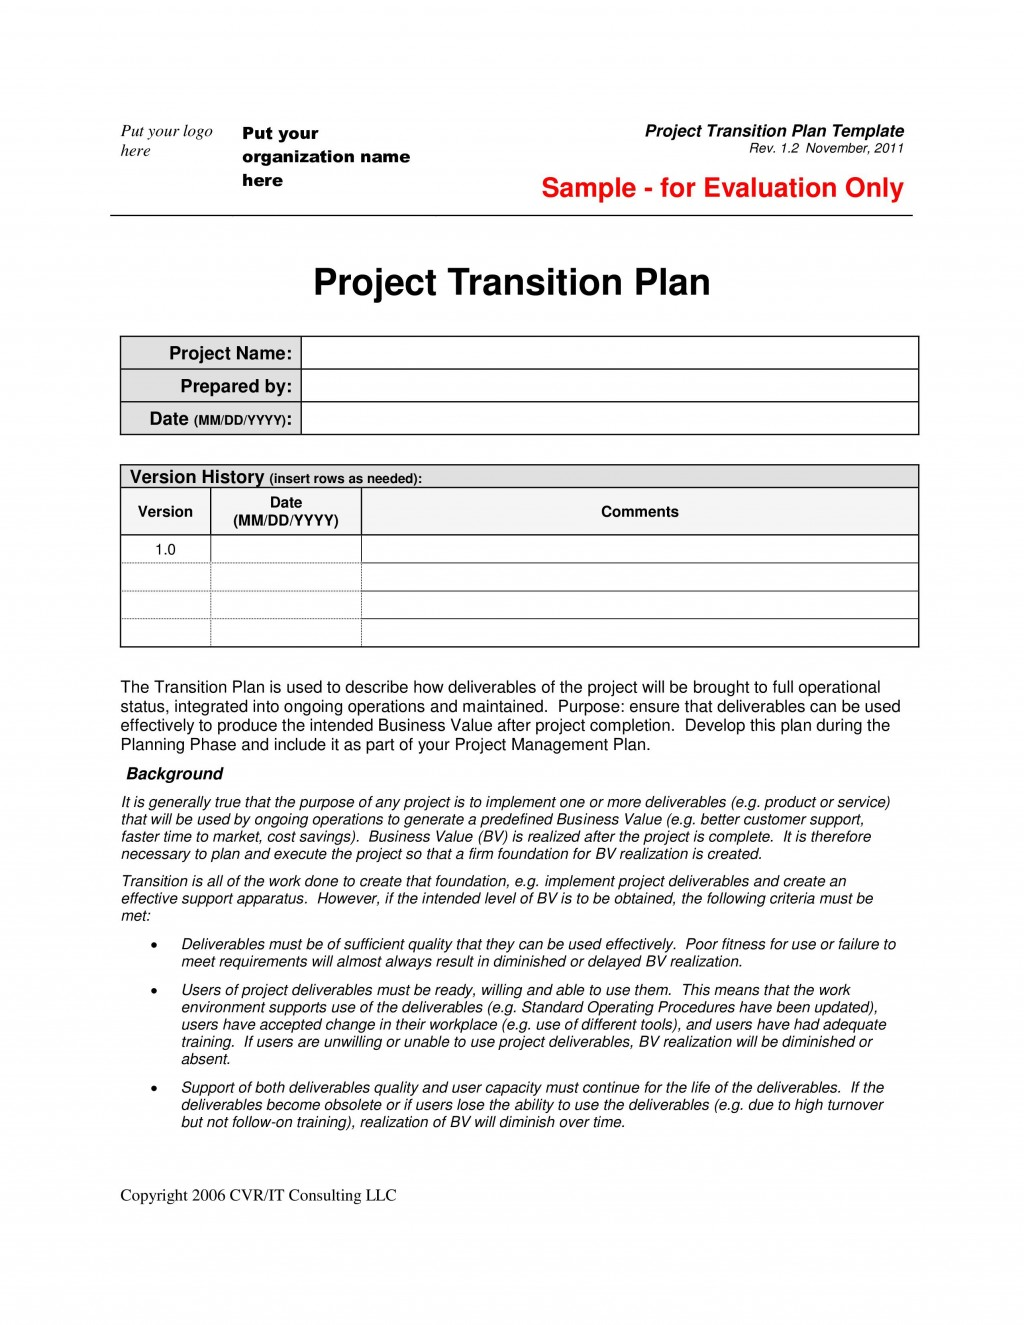 003 Fearsome Project Transition Plan Template High Resolution  Excel Download Software SampleLarge